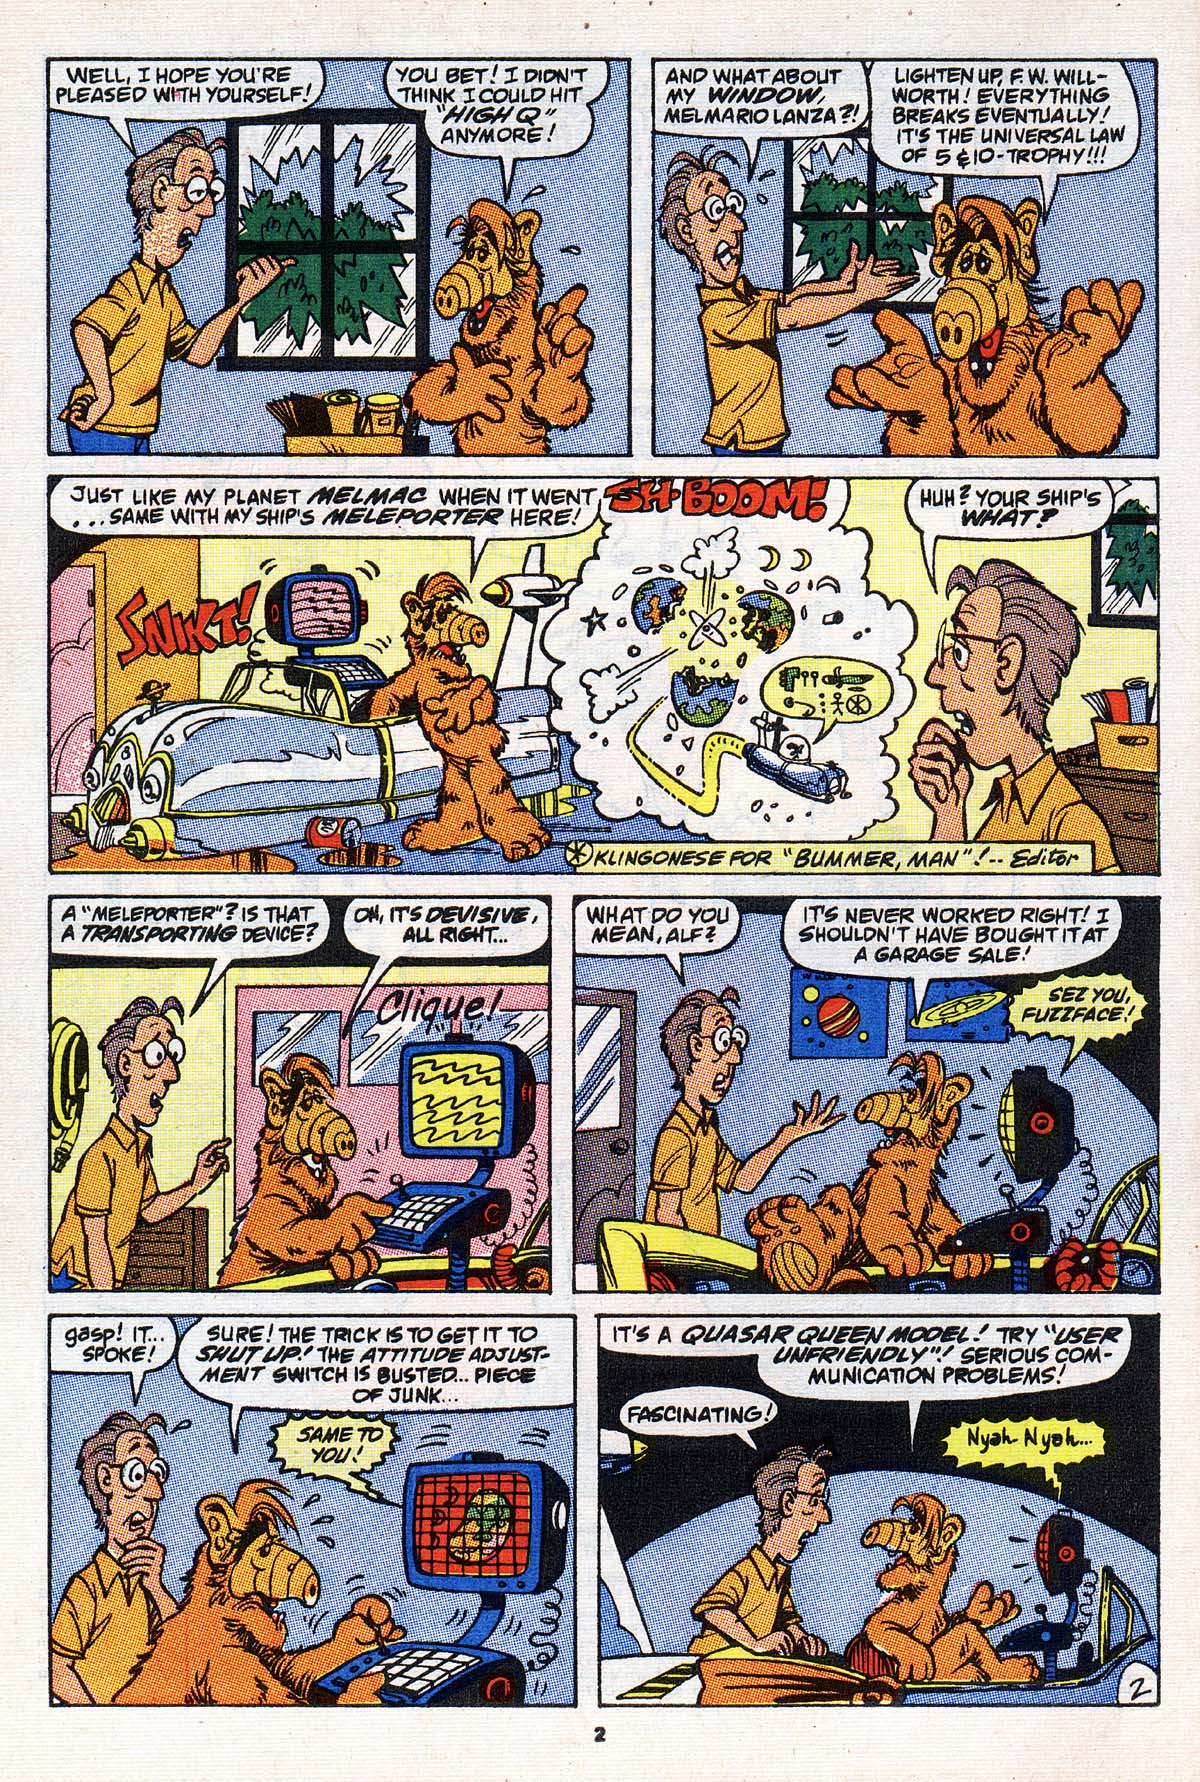 Read online ALF comic -  Issue #23 - 3